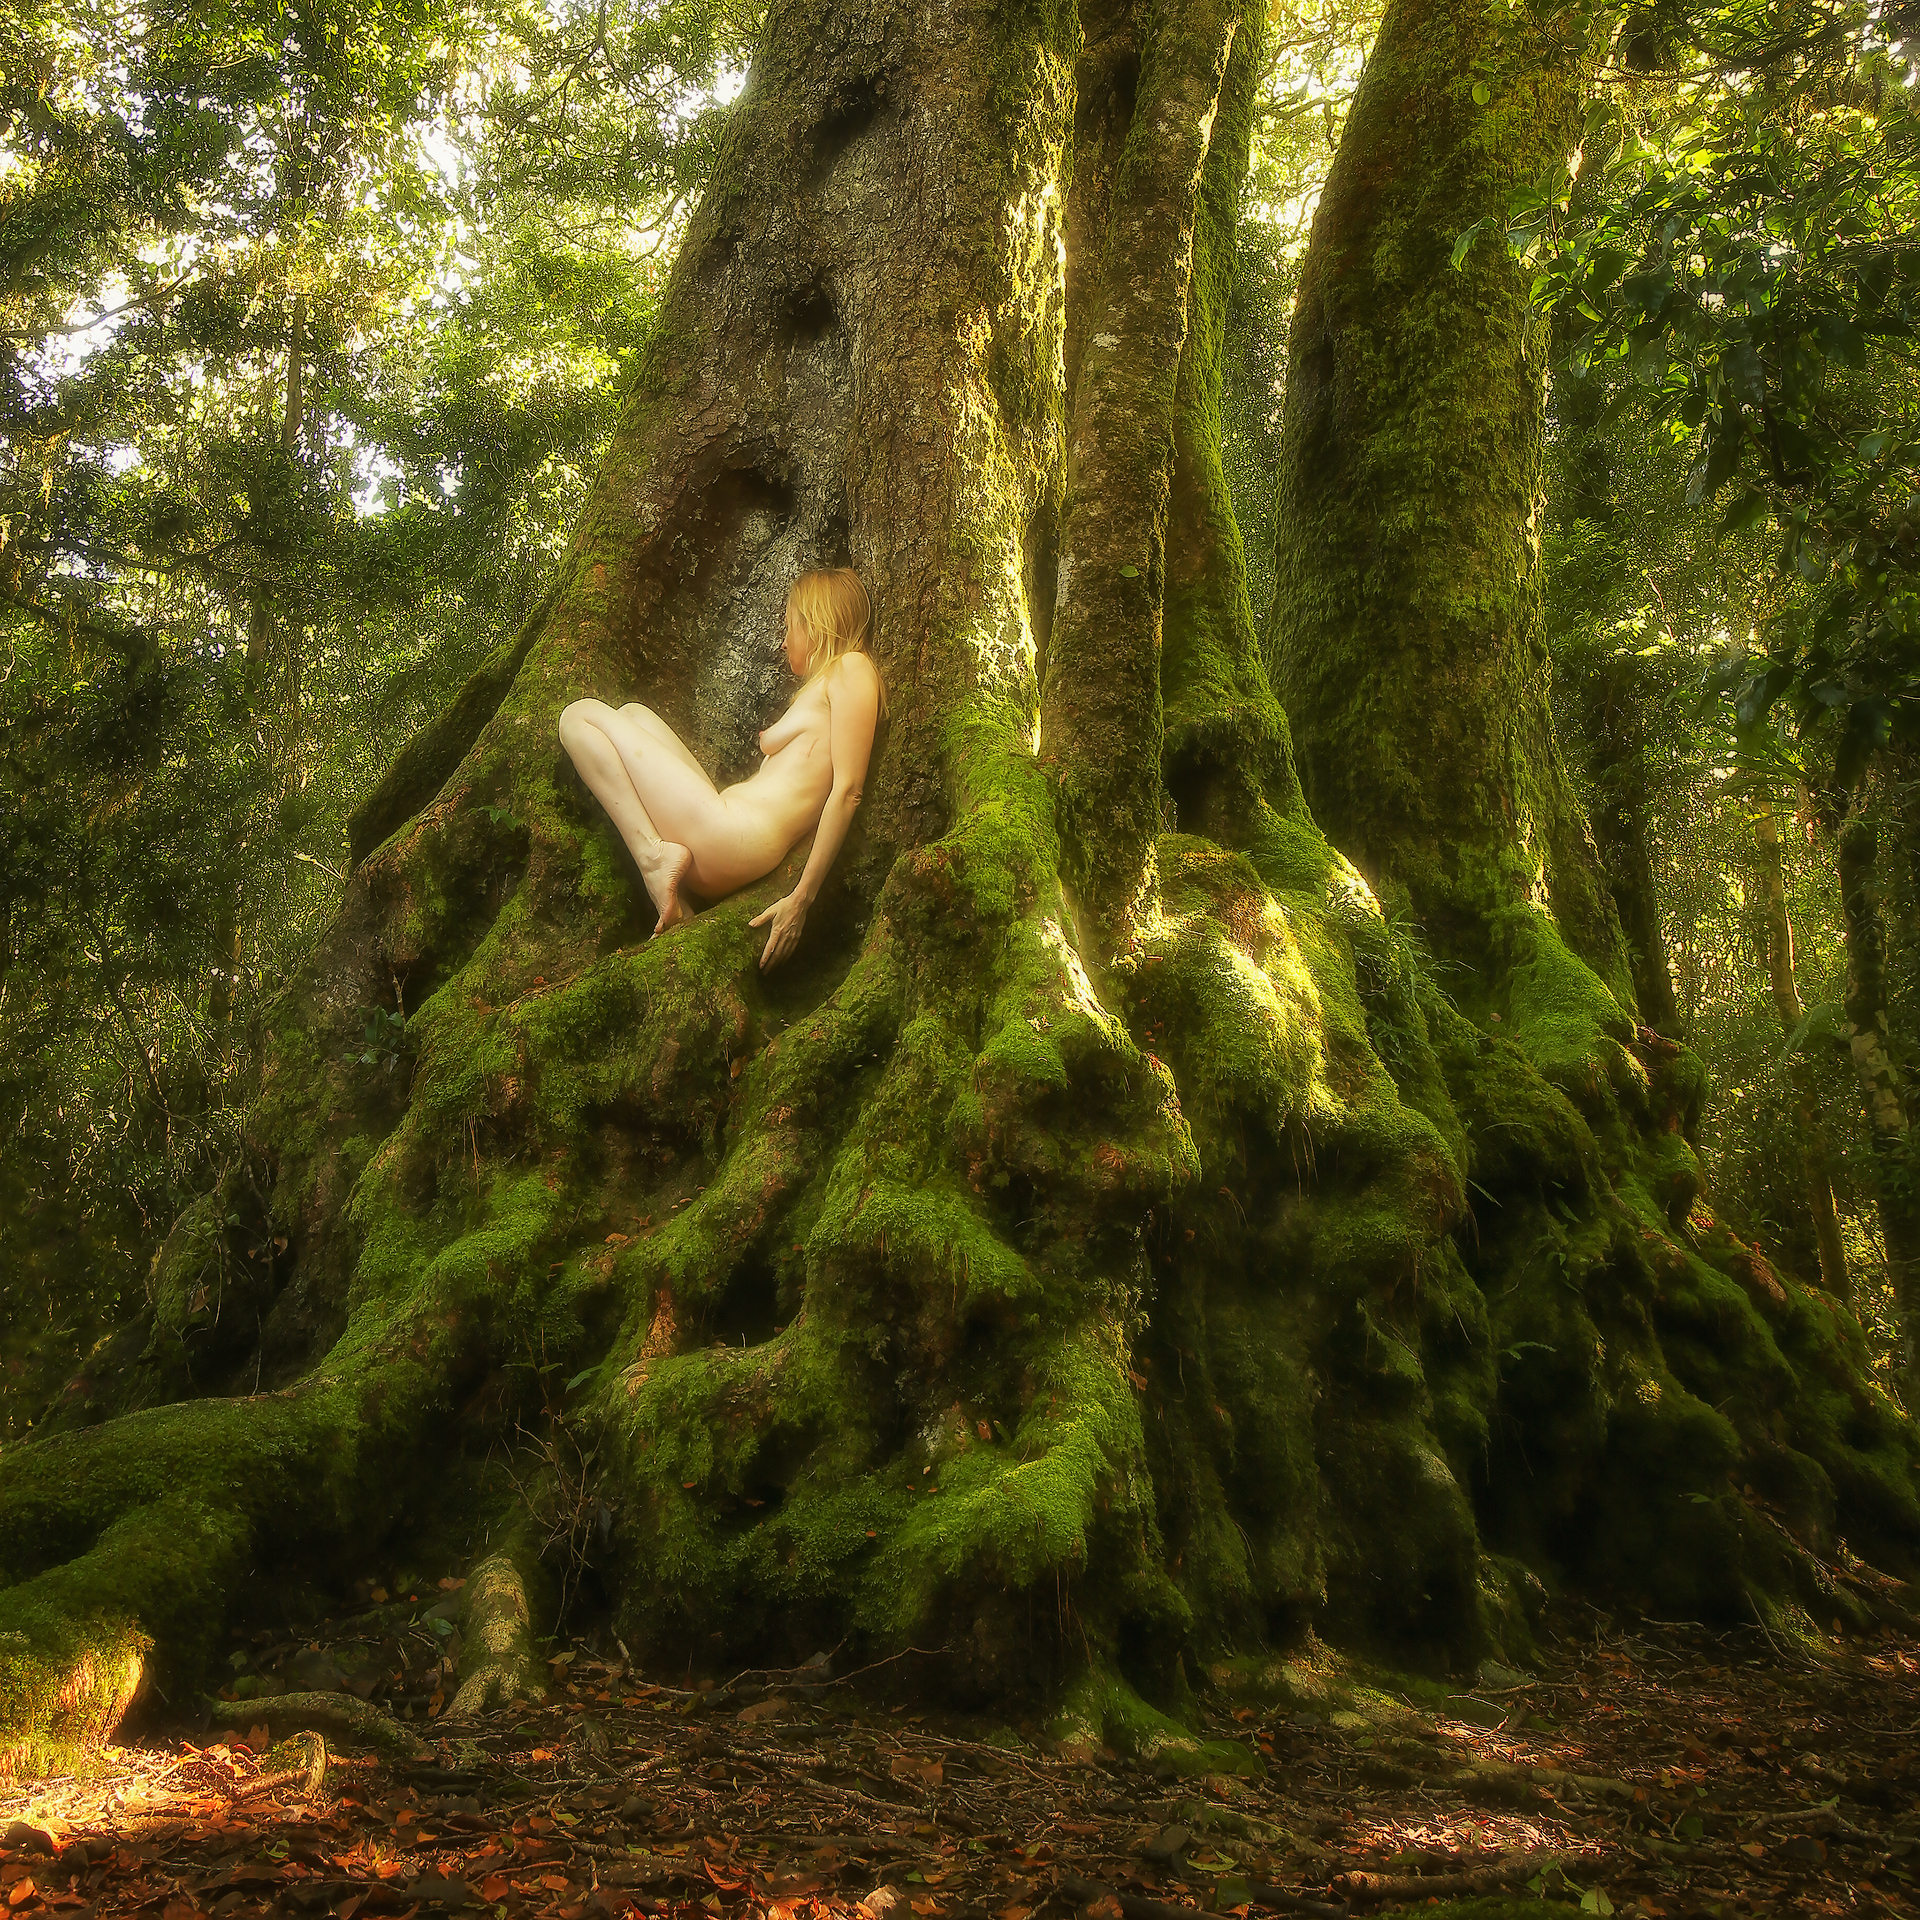 projects treegirl intimate encounters with wild nature book photography